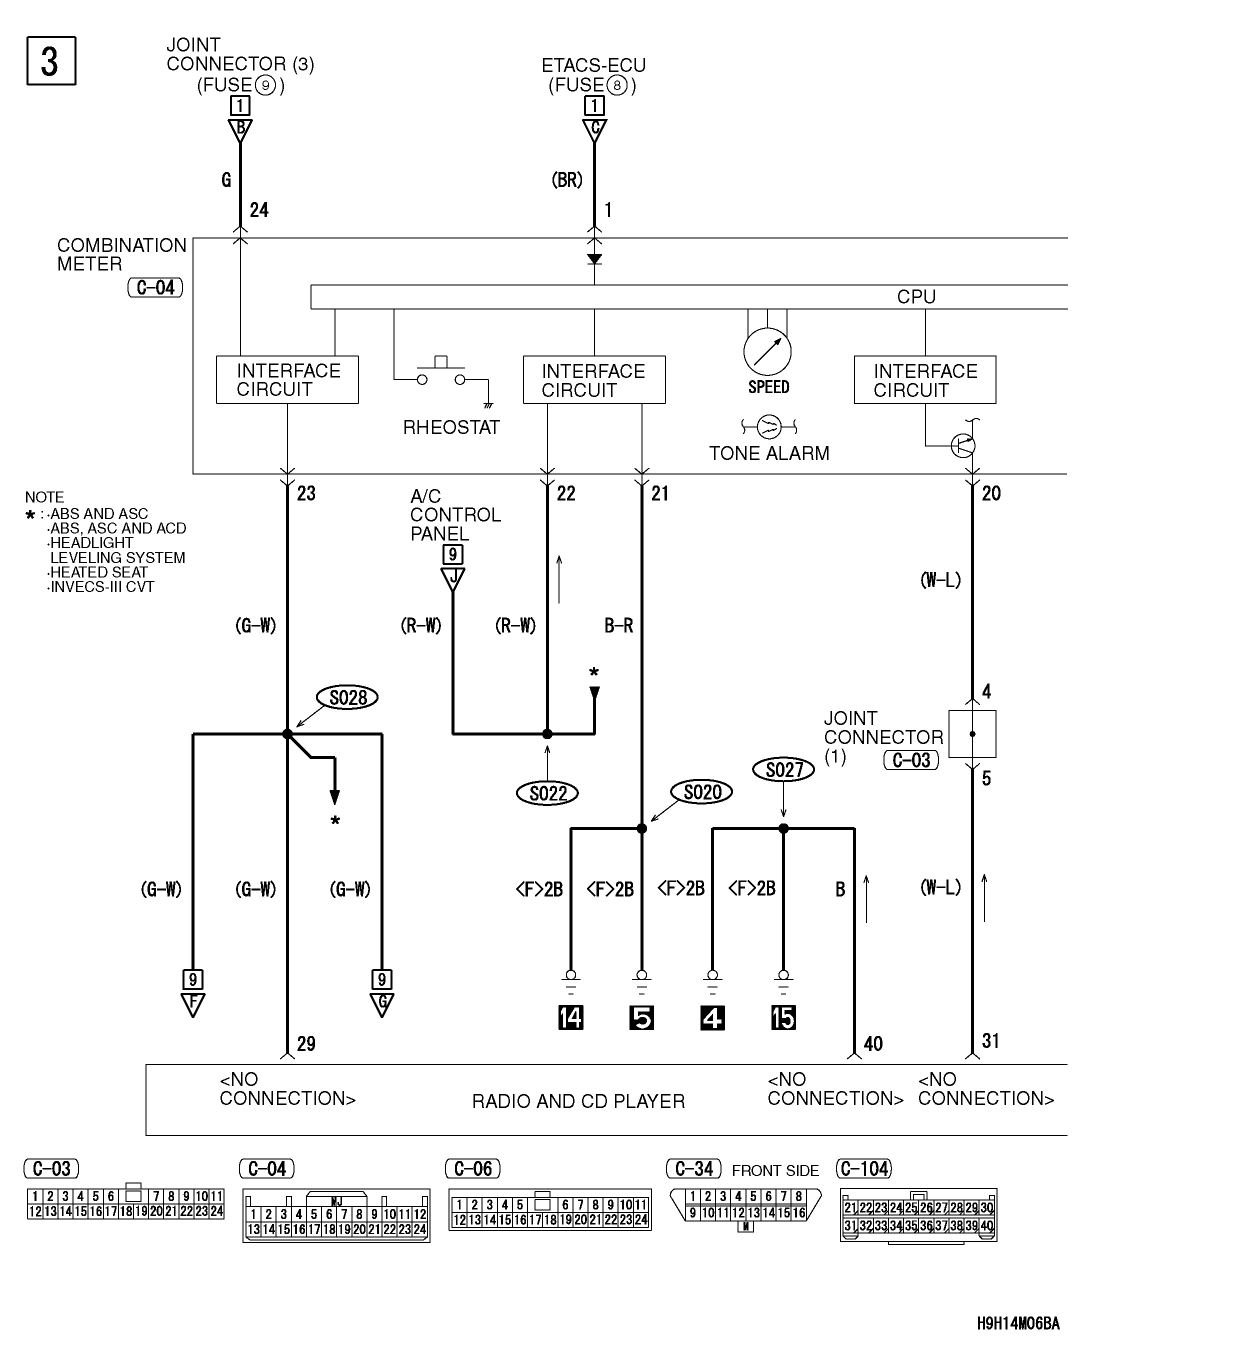 2009 Lancer Gts Stereo Wiring Diagram